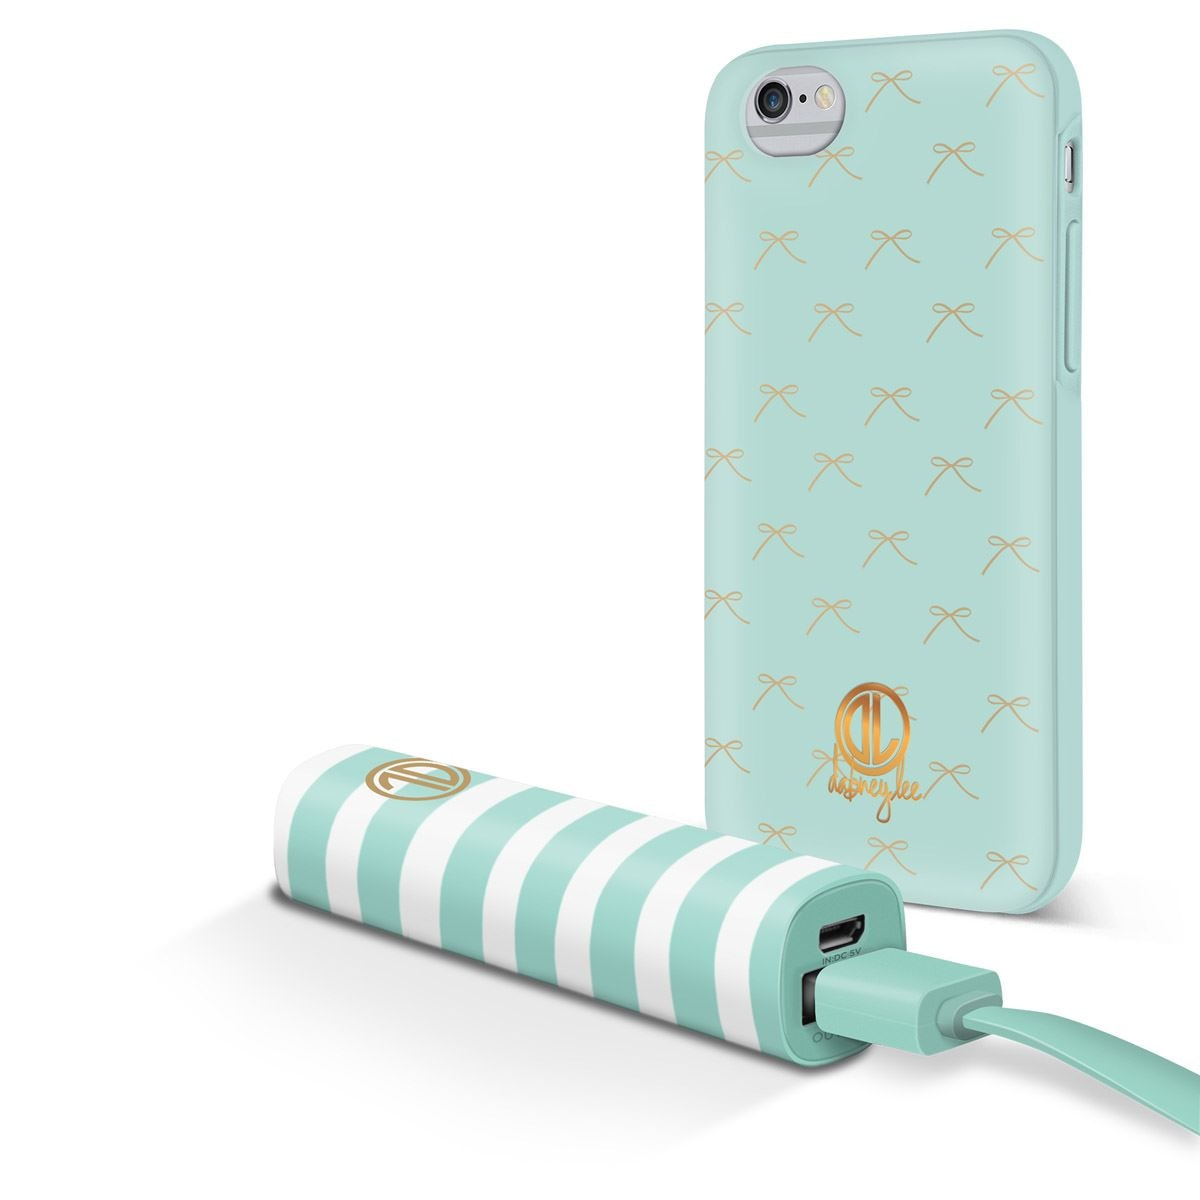 Paquete funda + power bank 2500mah  - Sanborns